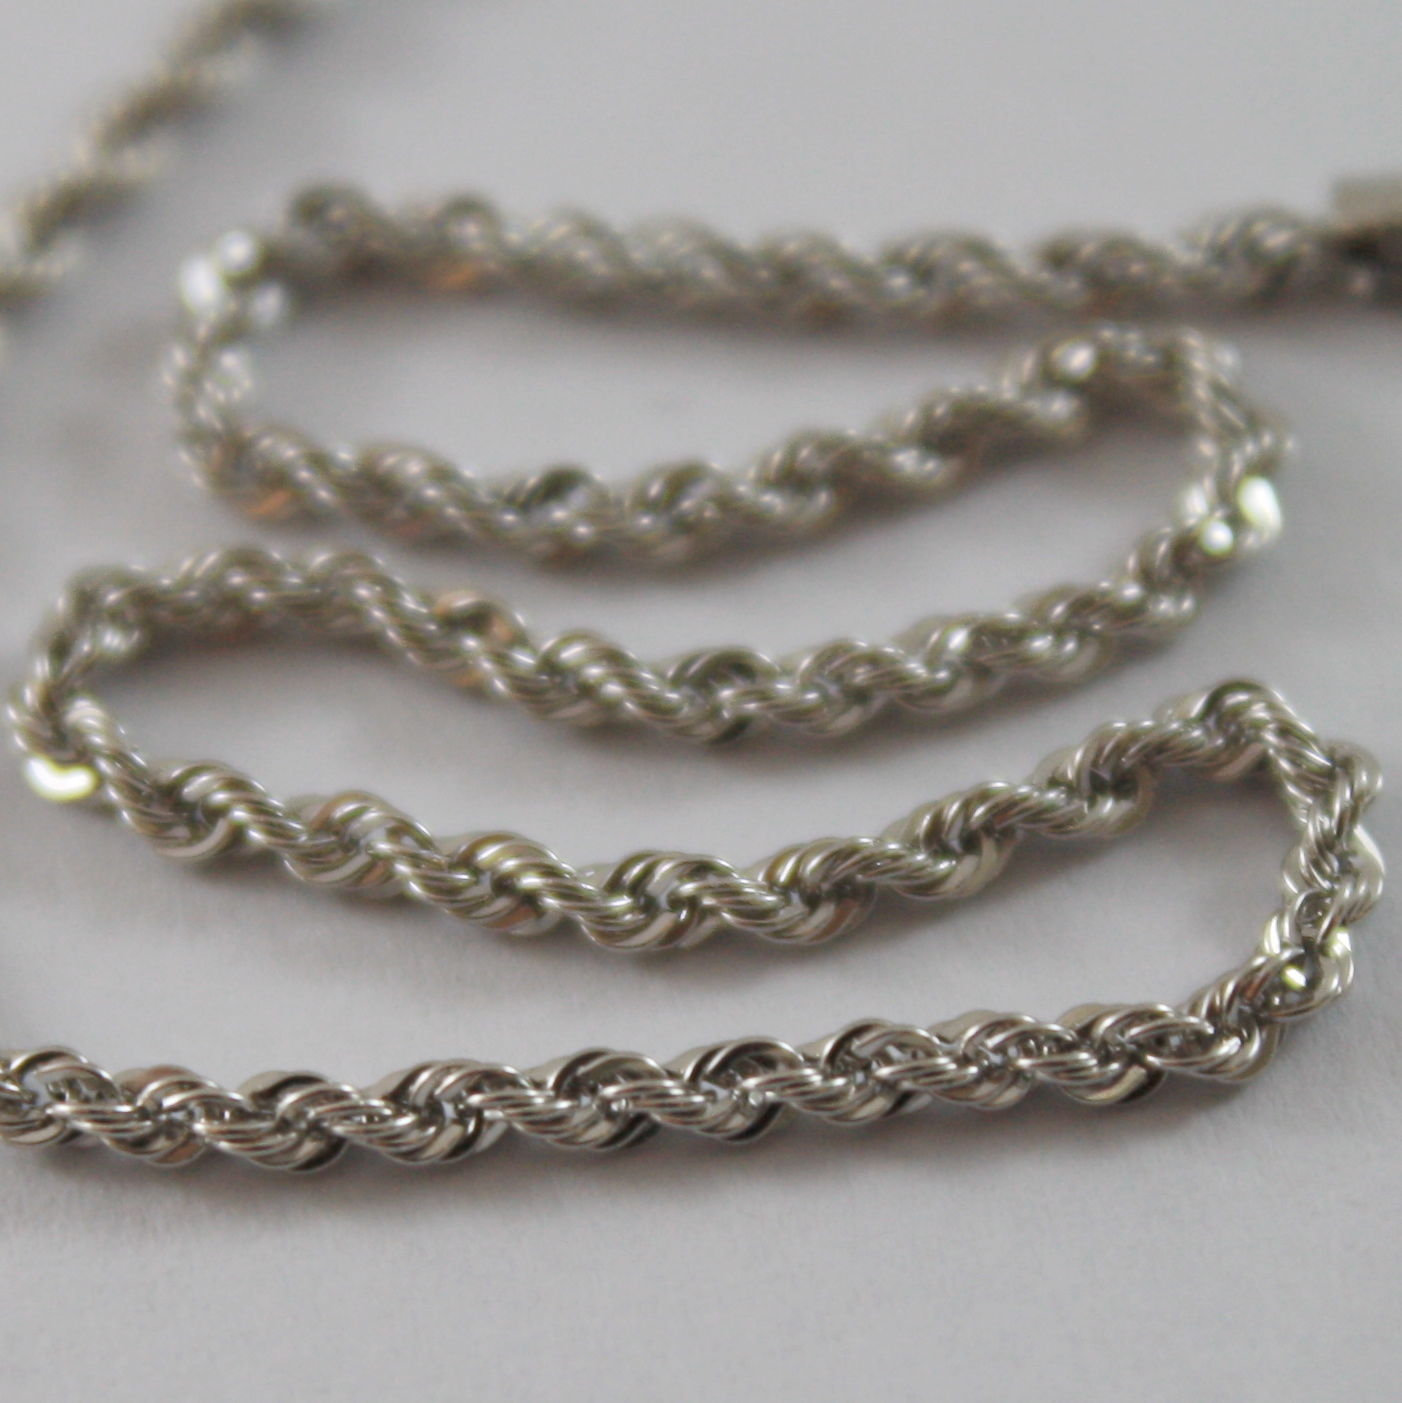 18K WHITE GOLD CHAIN NECKLACE, BRAID ROPE, 18 INCHES, 45 CM LONG, MADE IN ITALY